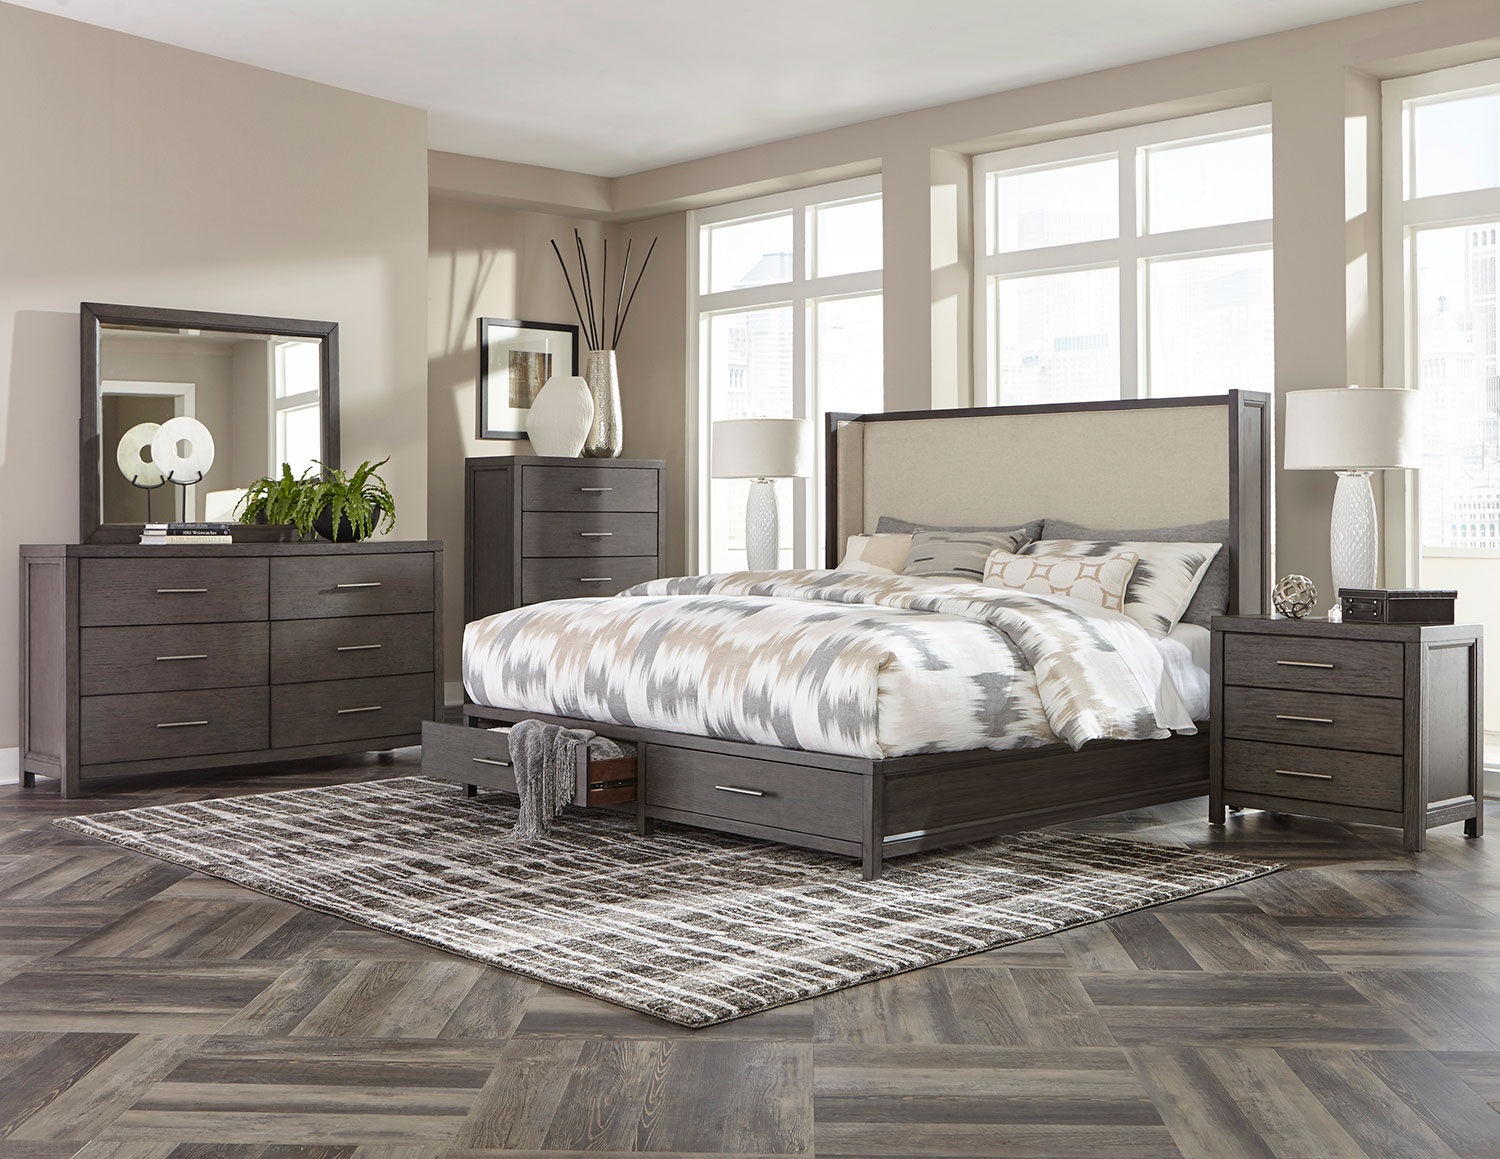 Homelegance Fondren Platform Storage Bedroom Set - Dark Gray/Brown